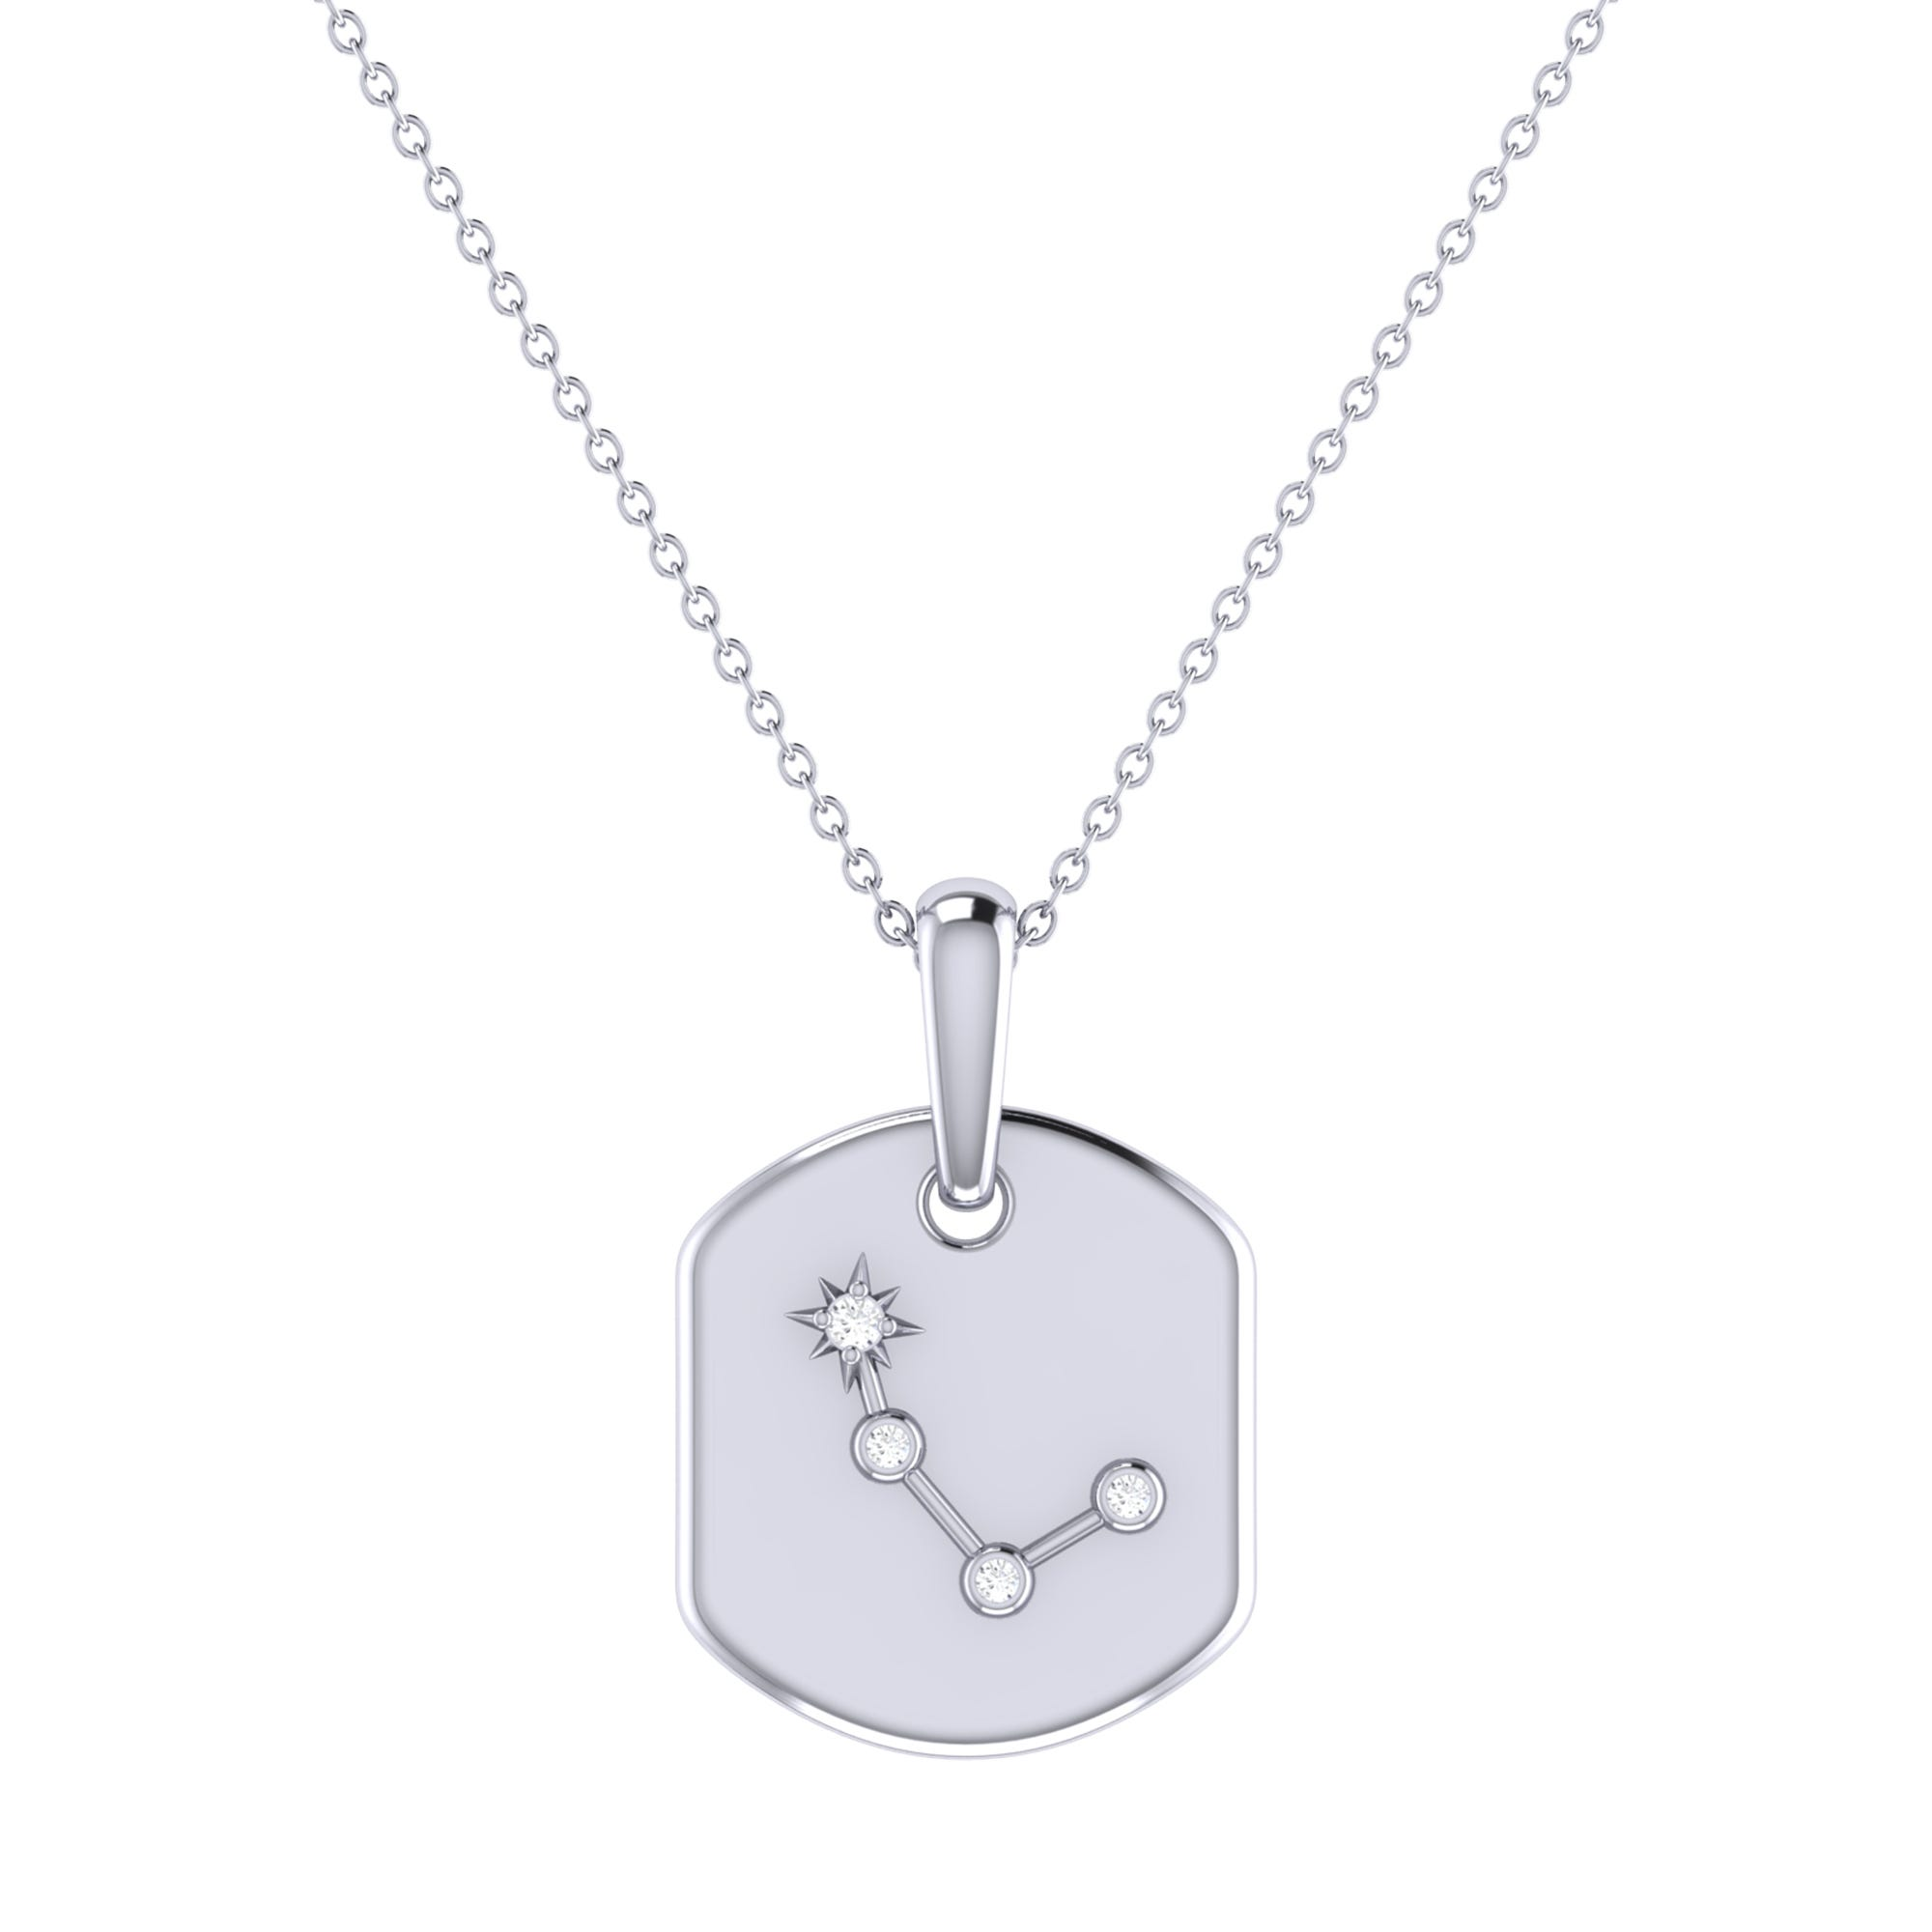 Diamond Aries Constellation Tag Necklace in Sterling Silver